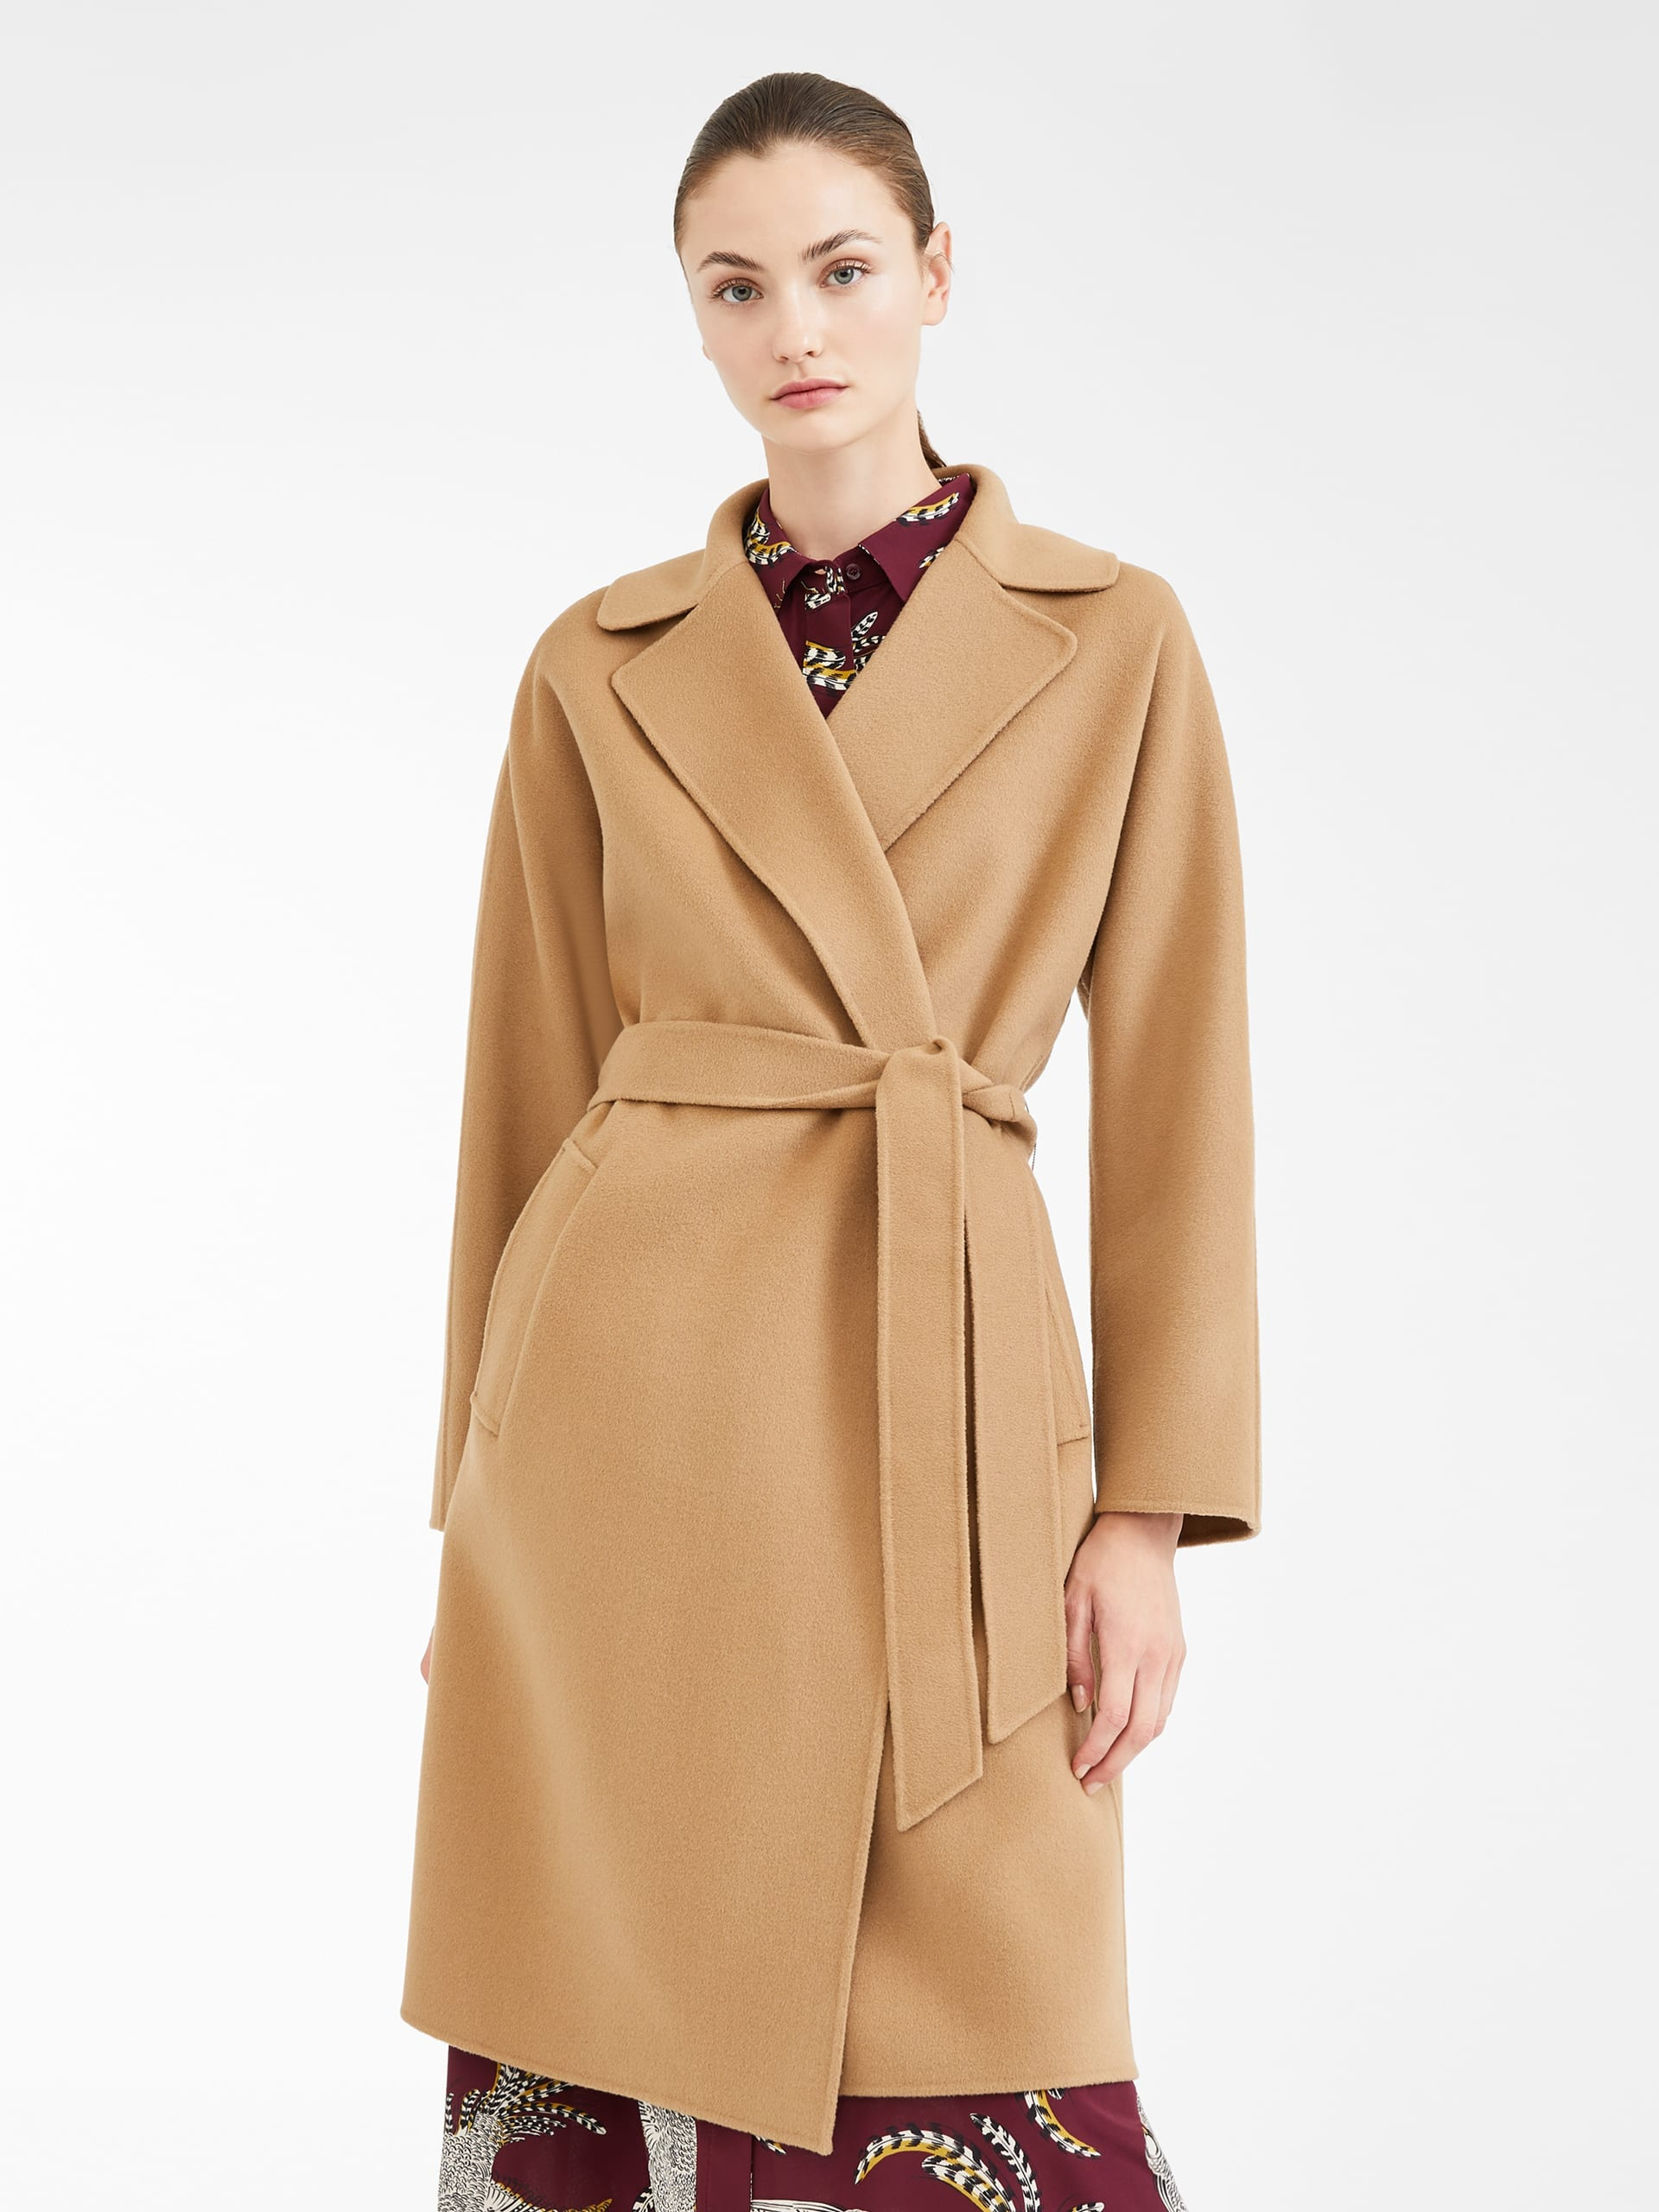 Max Mara: Up to 30% off select Weekend Collection